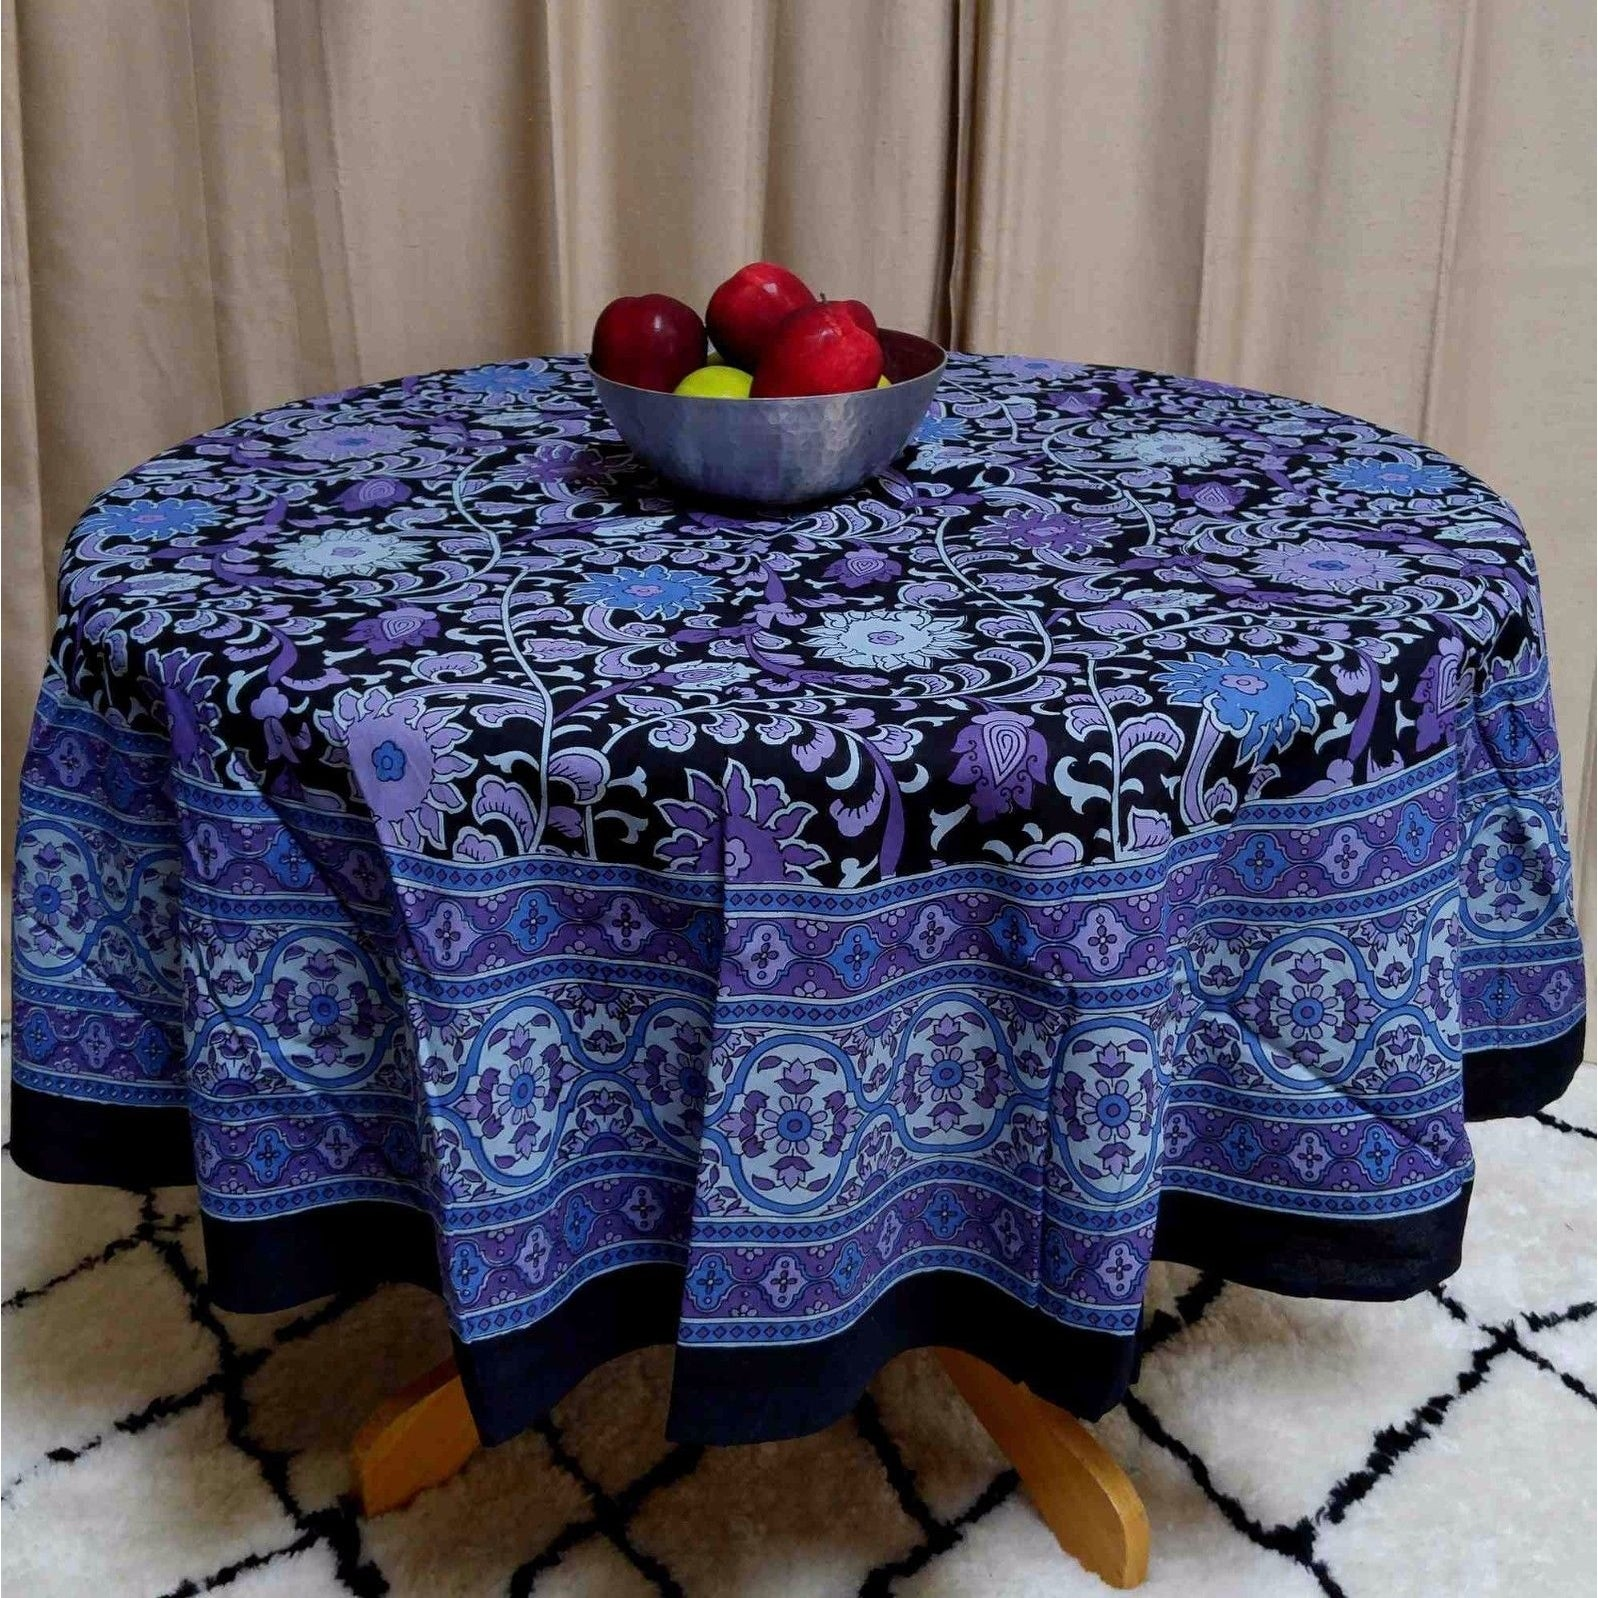 "Handmade Sunflower Print 100% Cotton Tablecloth 60""x60"" Square & 66"" Round in Two shades - Yellow Black & Blue Black - Thumbnail 0"